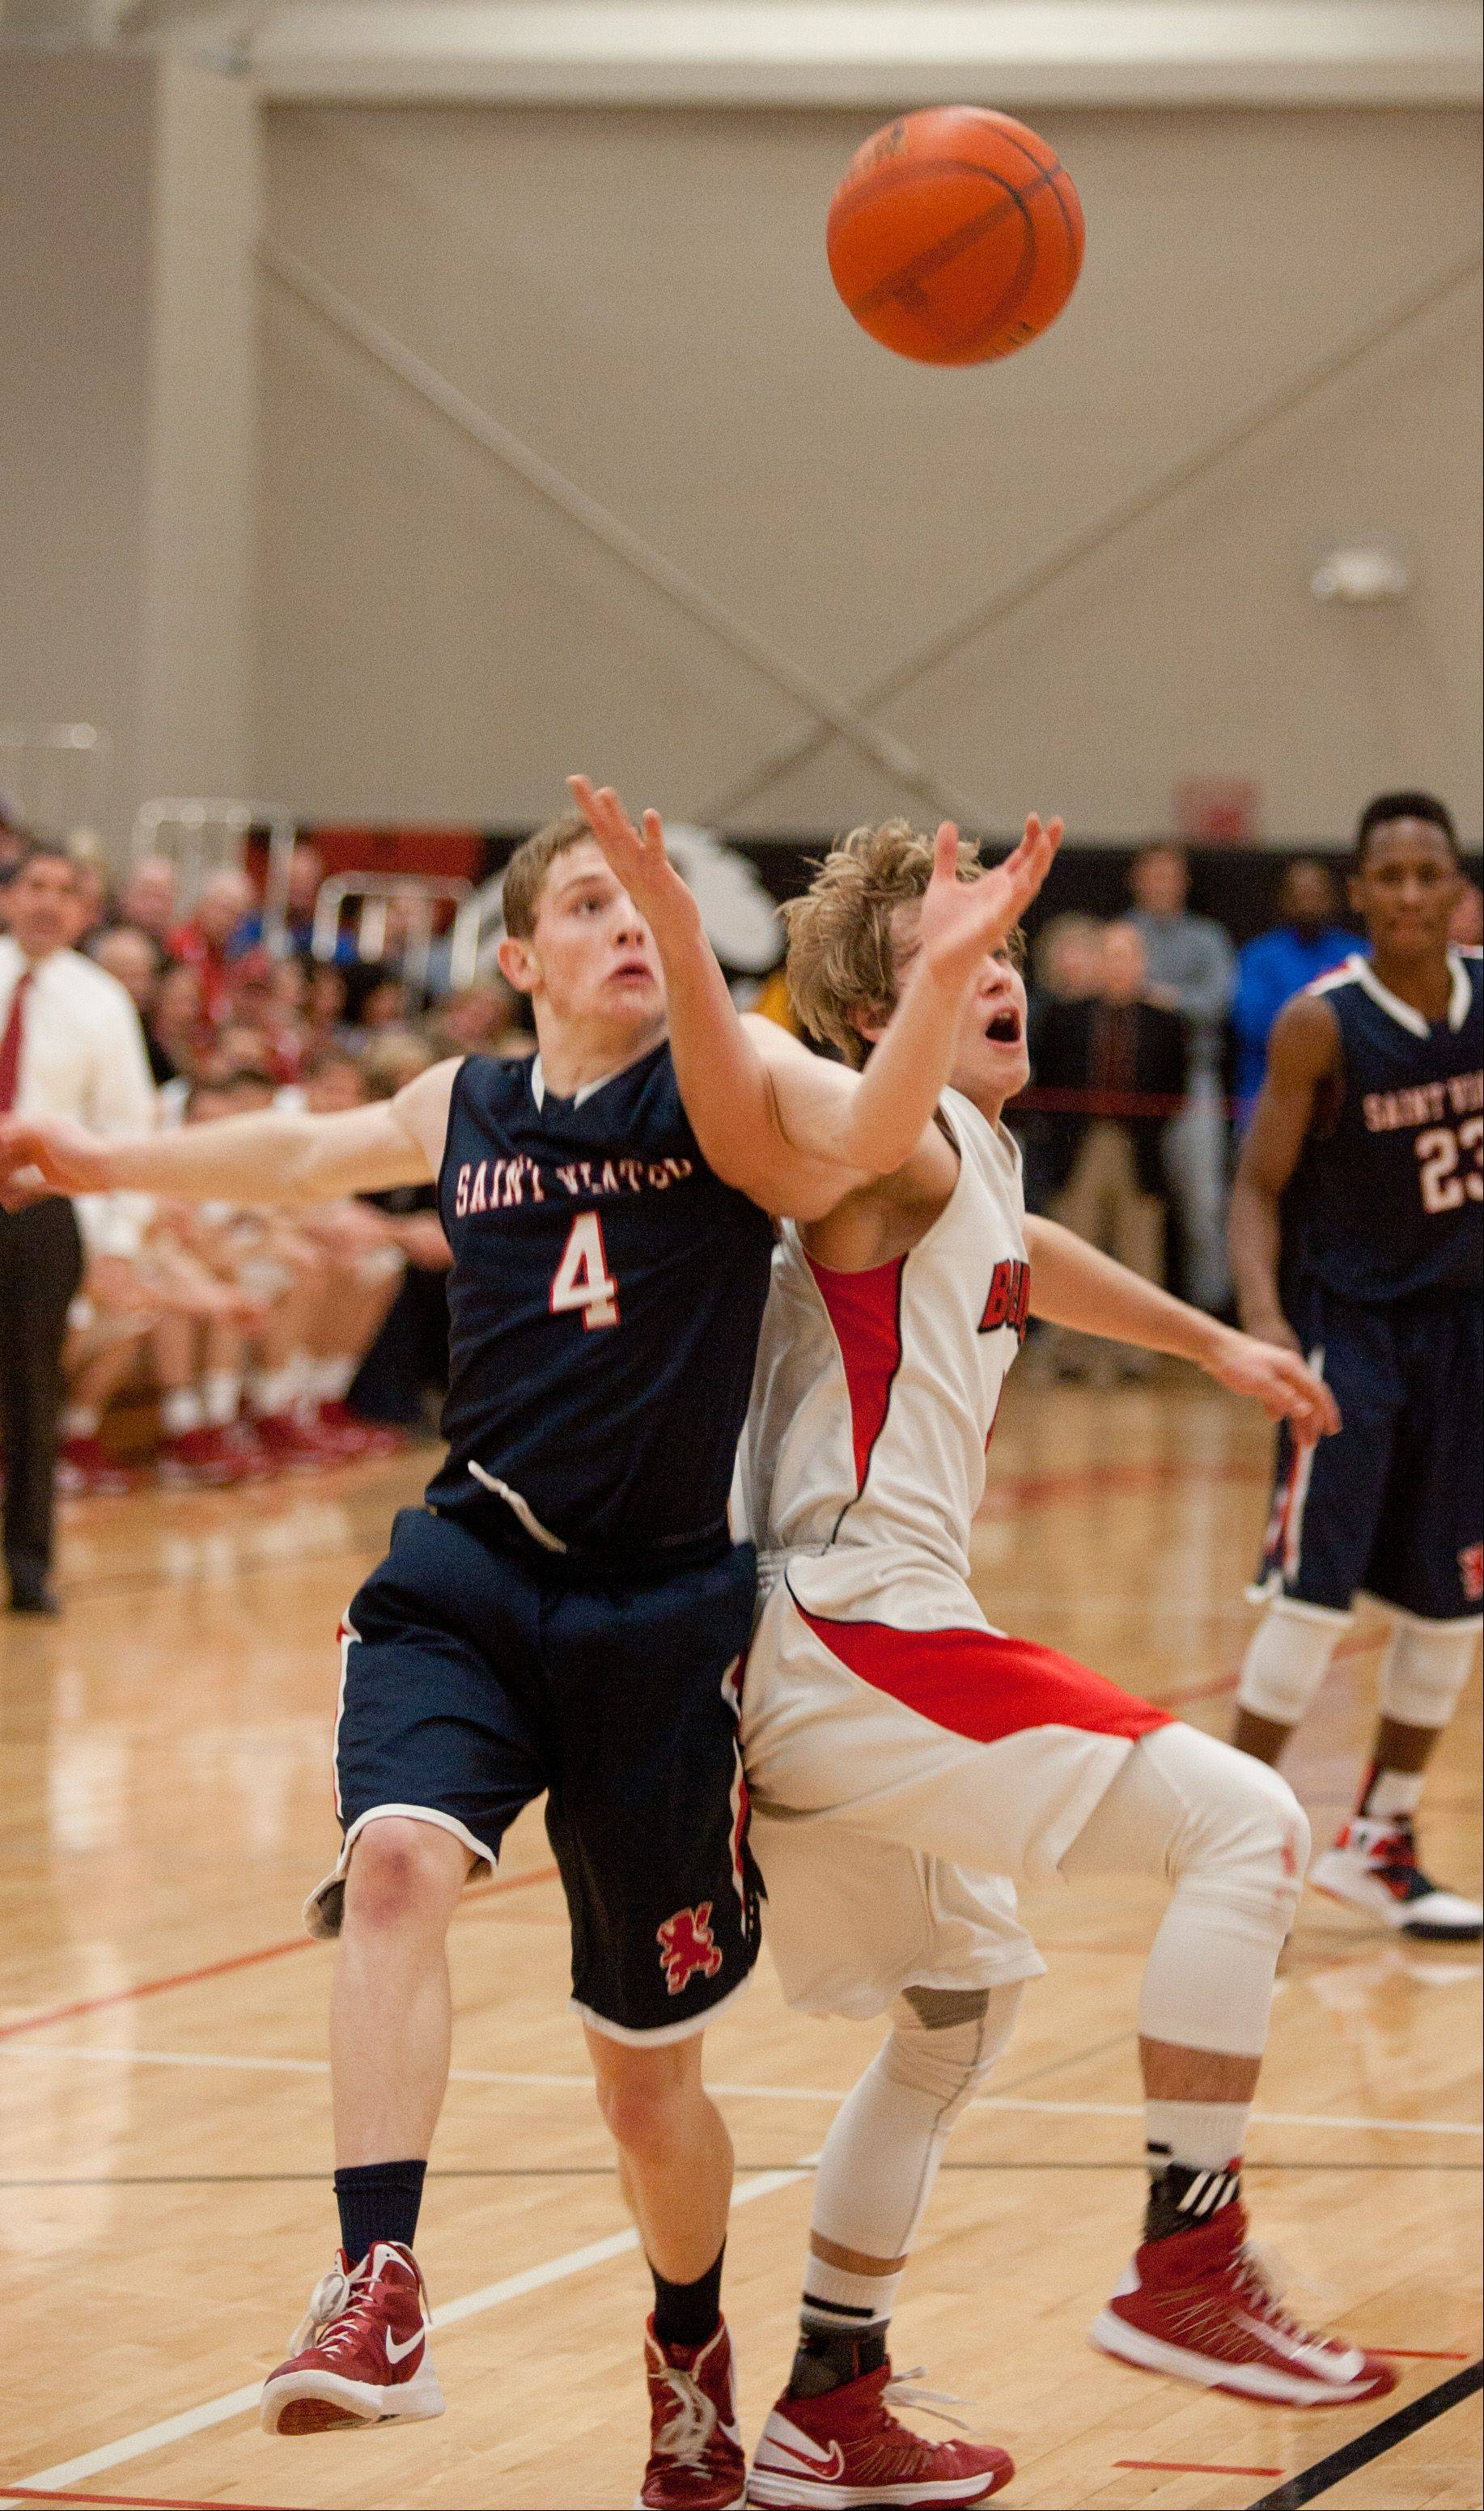 St. Viator's Kevin Hammarlund, left, battles Benet's Eddie Eshoo, right, during boys basketball action in Lisle.